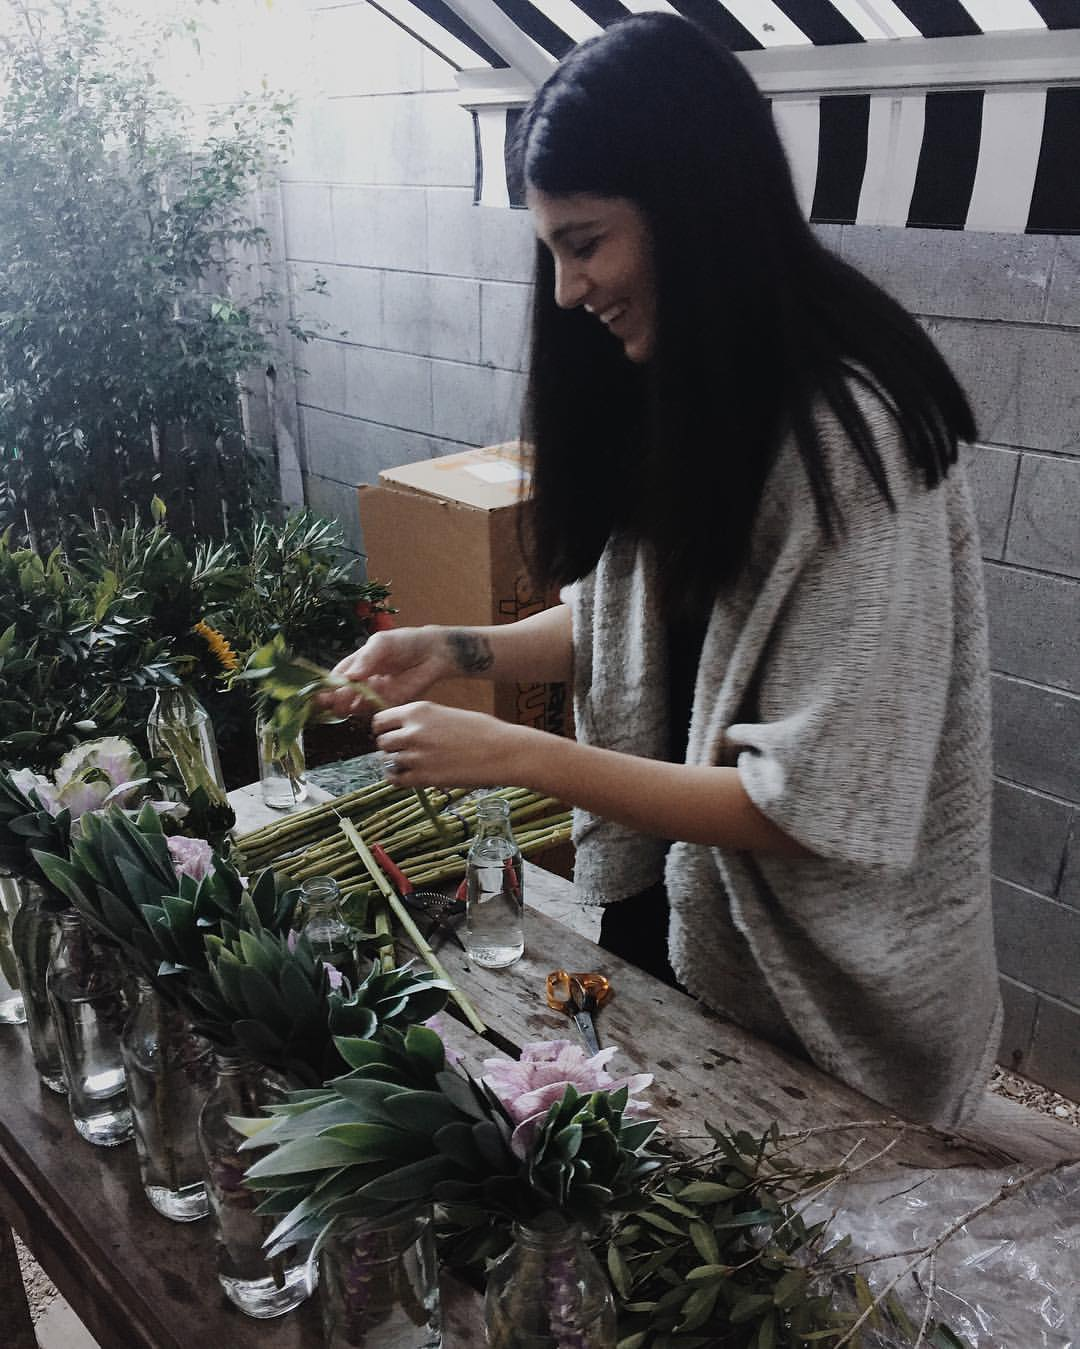 Ness creating works of art with her flowers